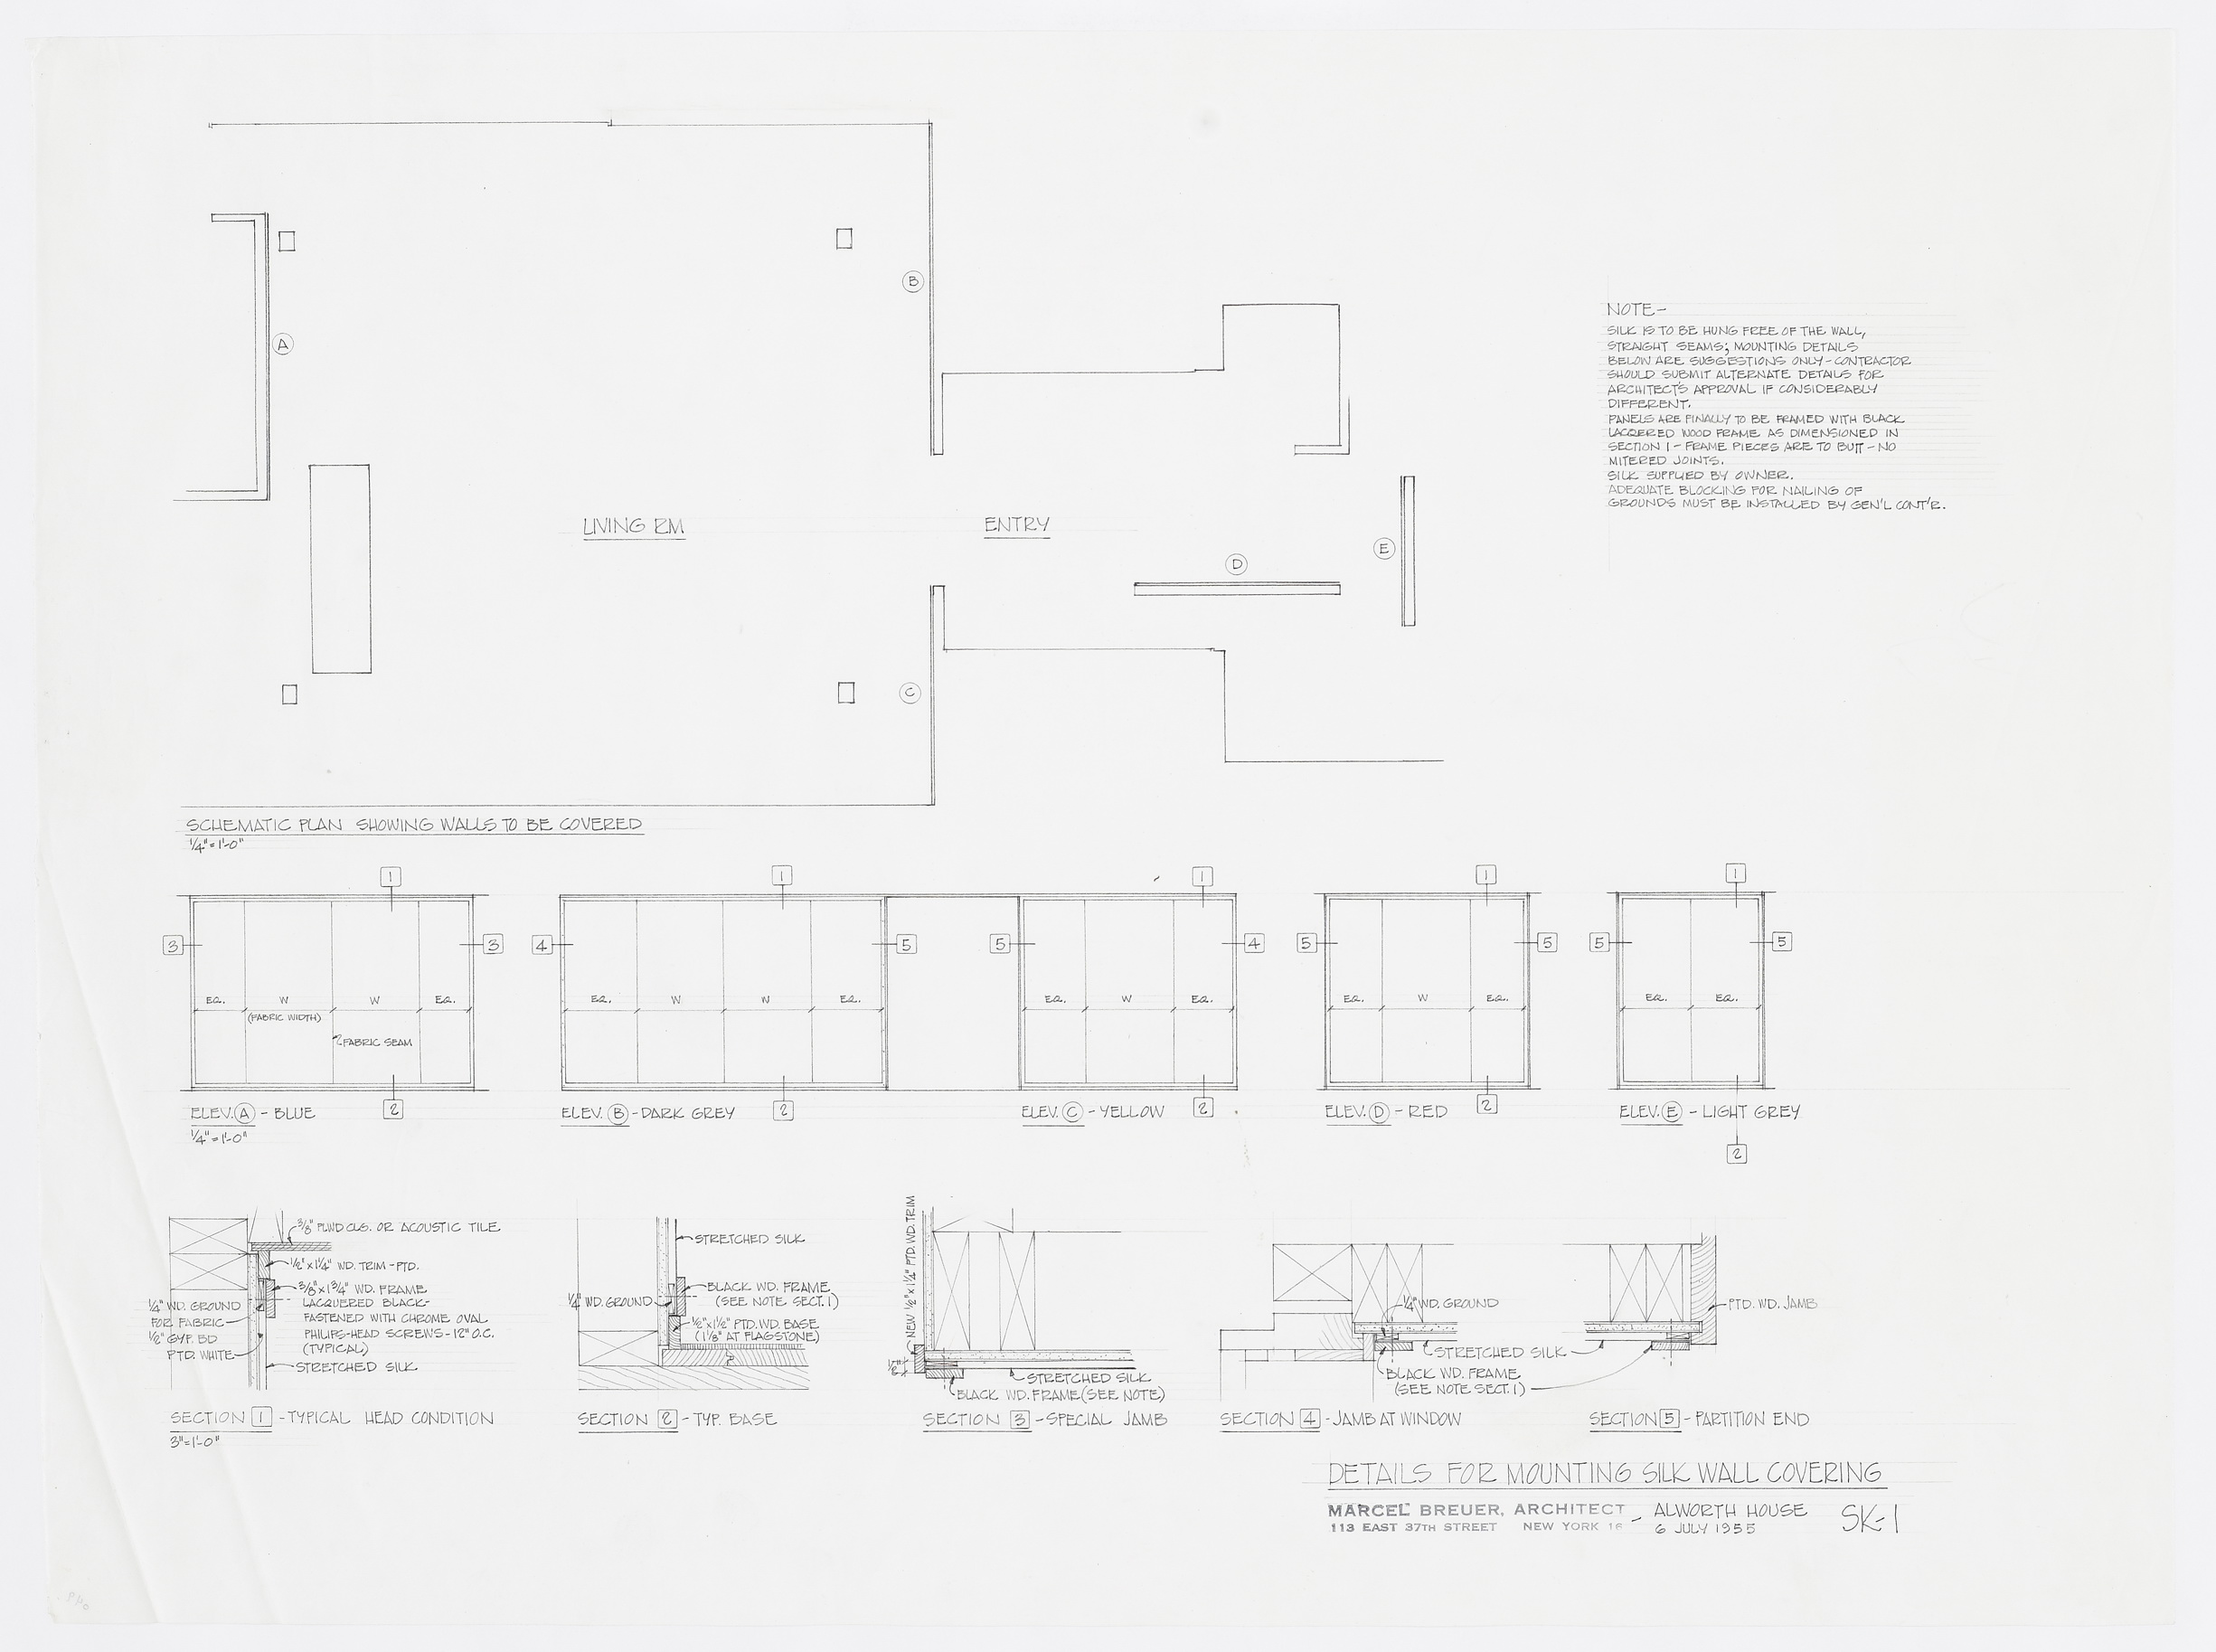 Click to select: Construction Details (SK drawings)